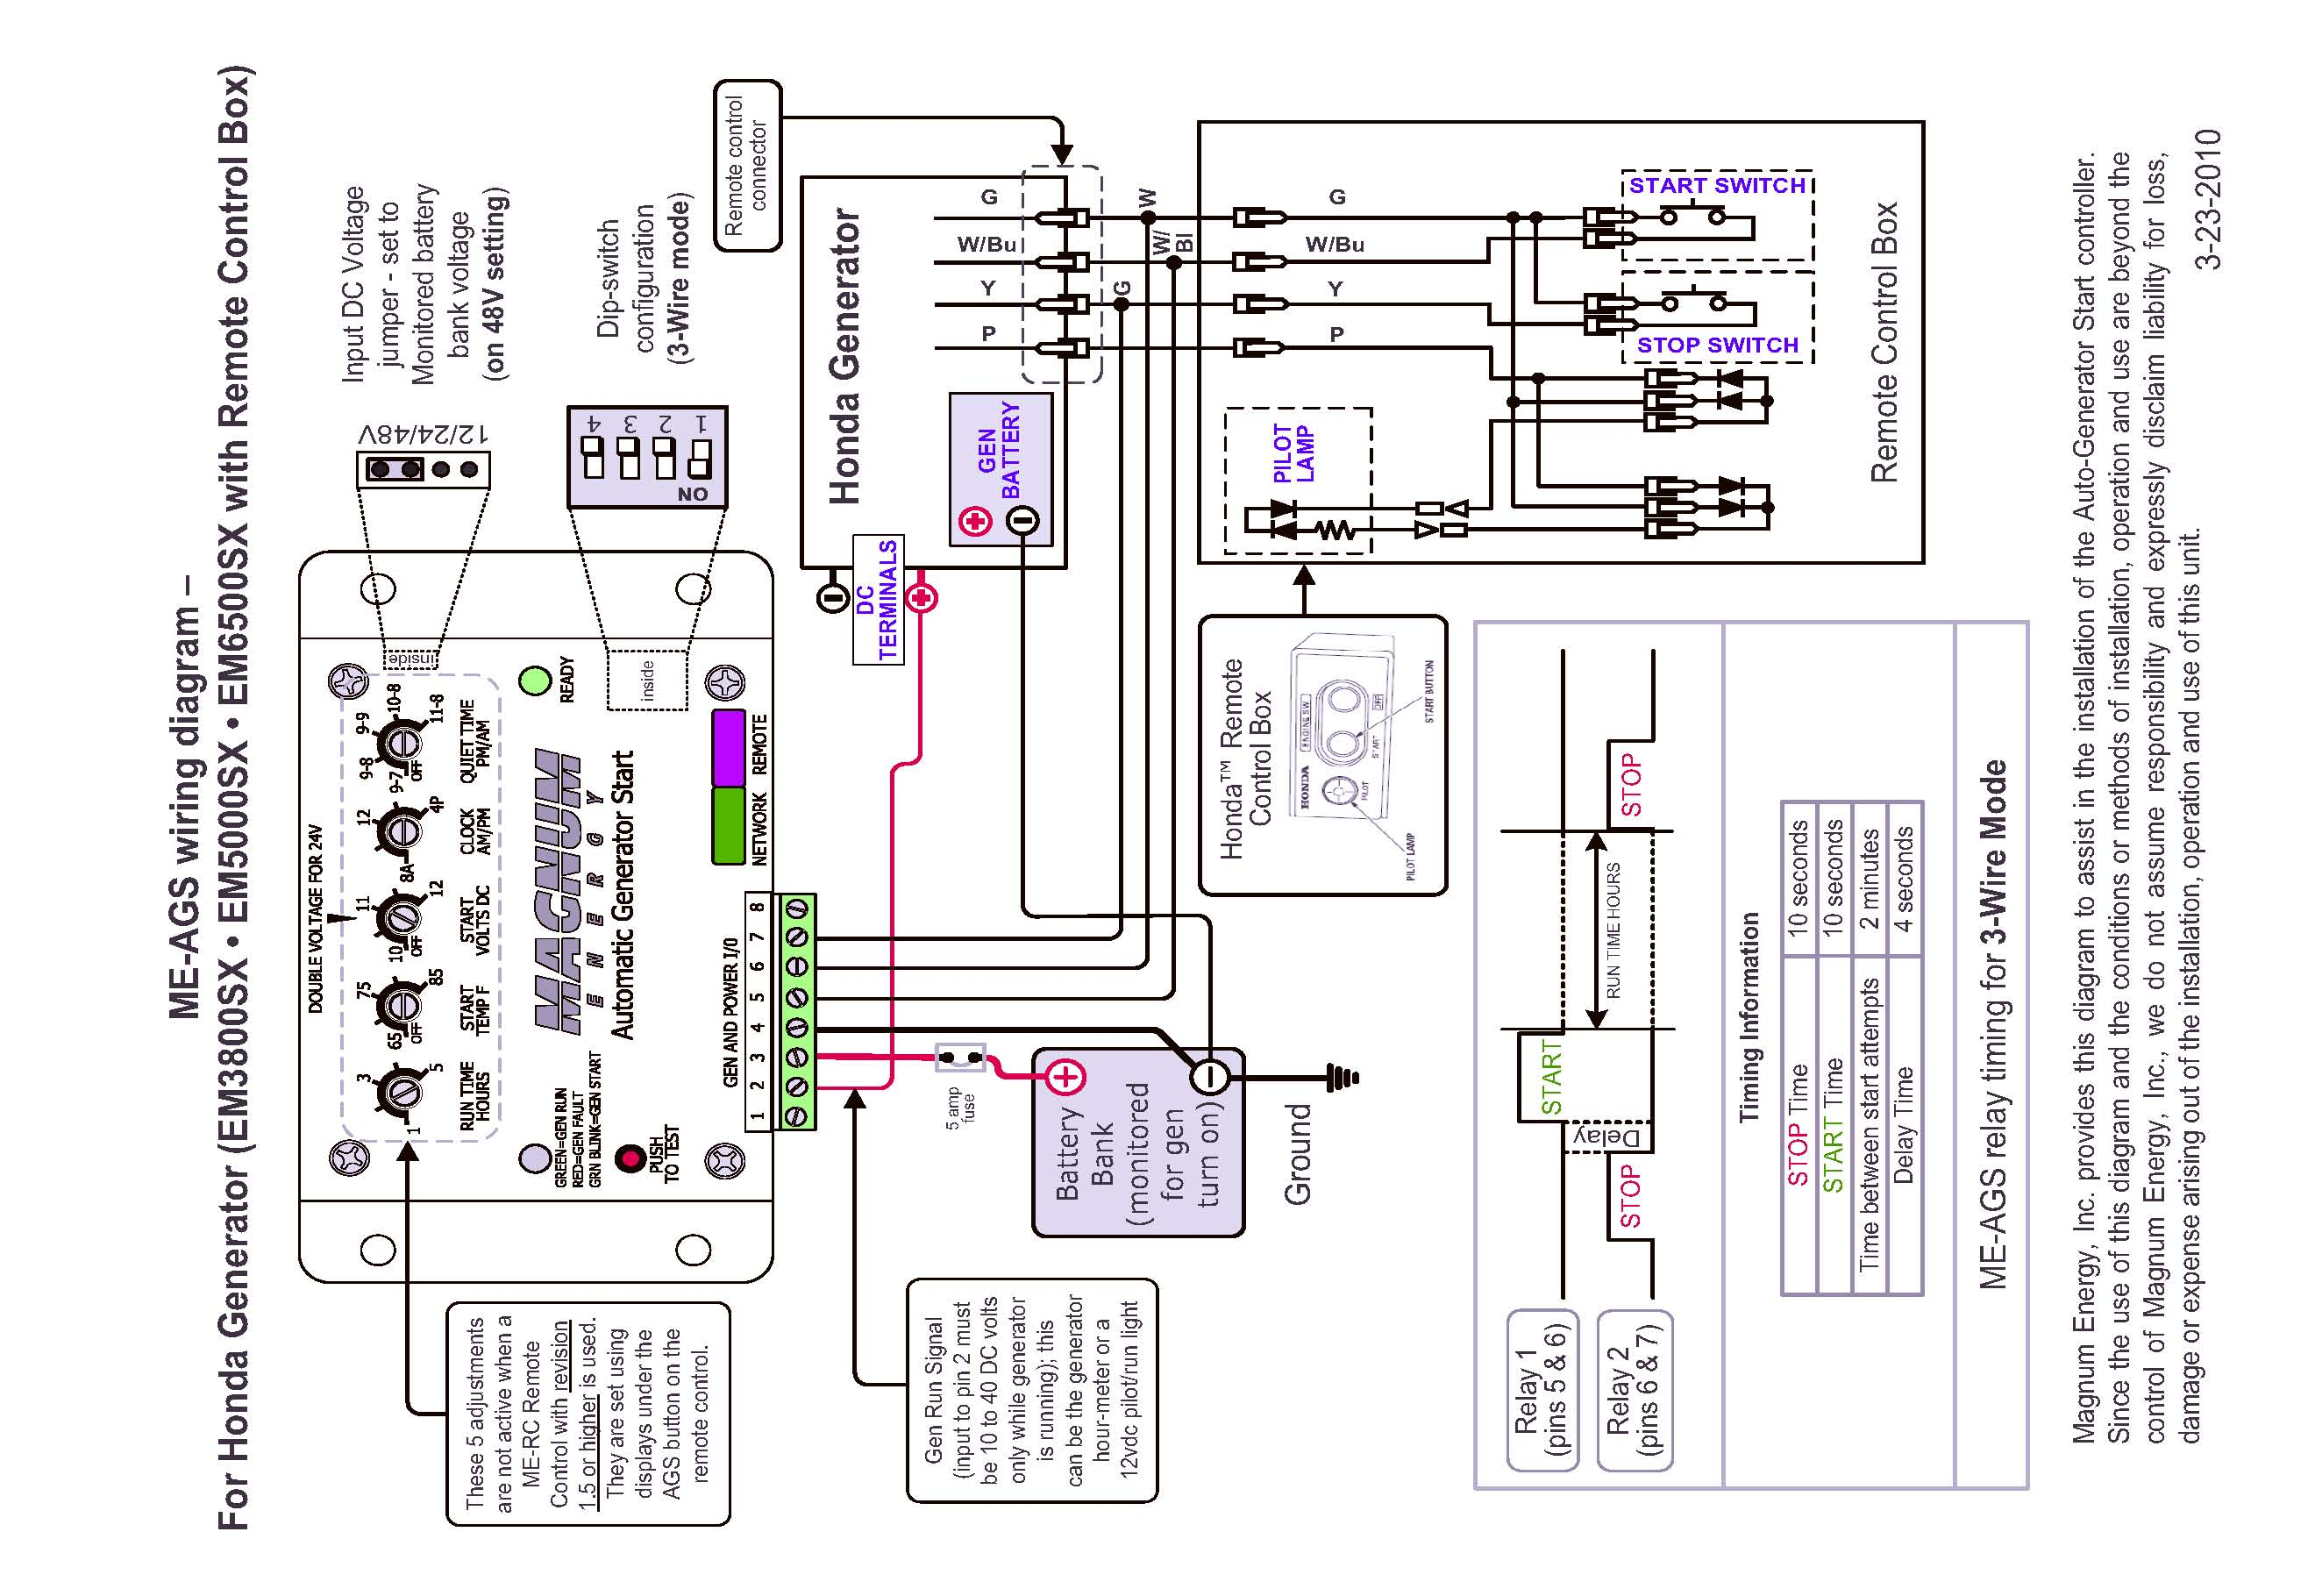 how do i get a winding wiring diagram or schematic for a honda